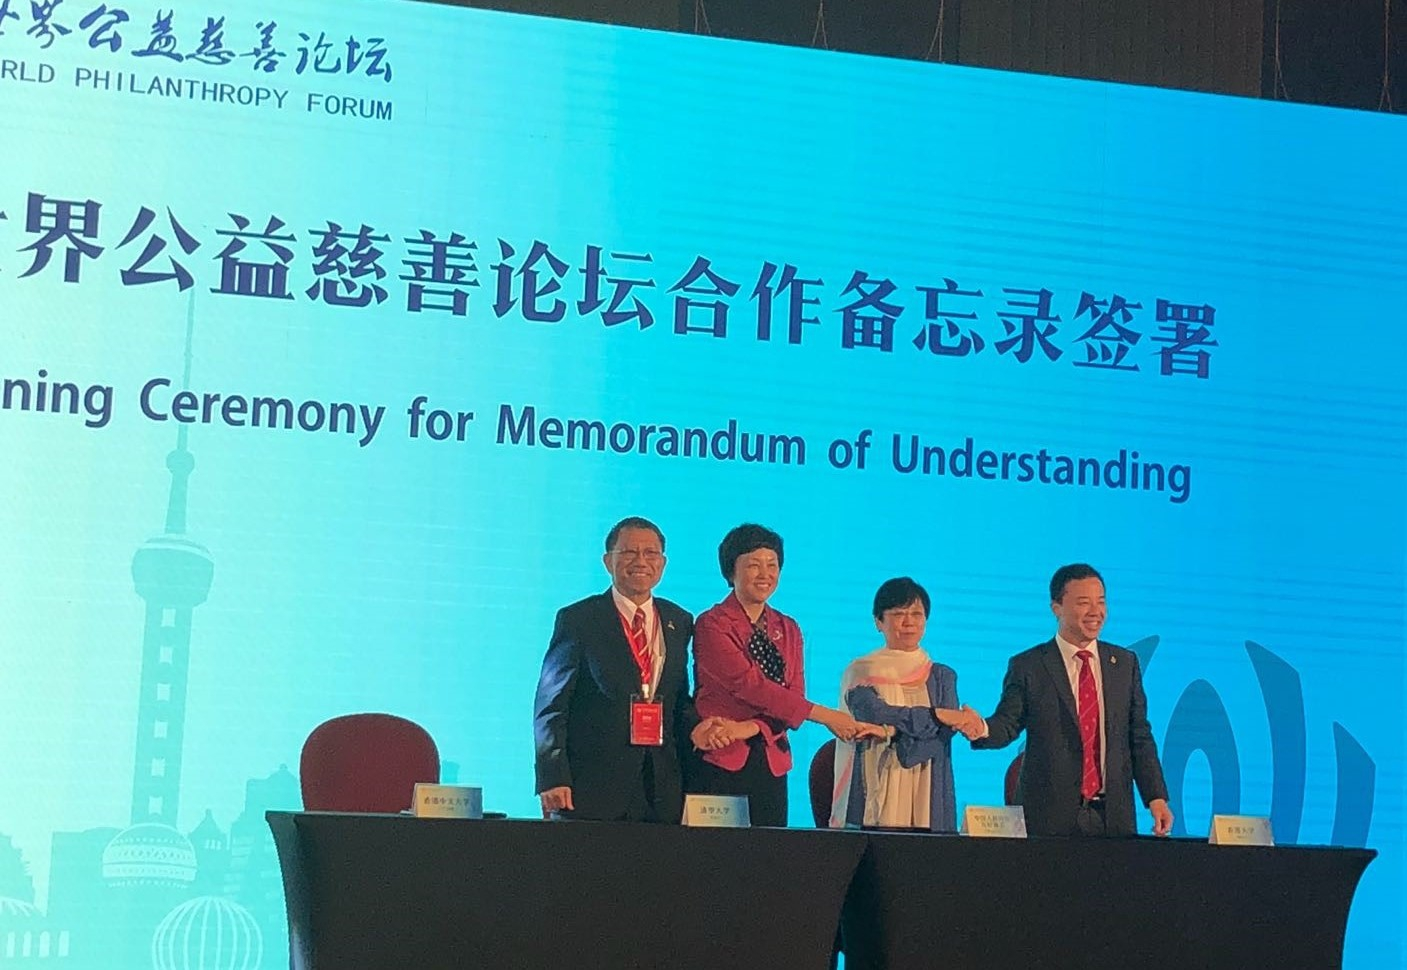 (From left) Professor Rocky S. Tuan, Vice-Chancellor and President of CUHK signs a MOU with Ms Chen Xu, Chairperson of the University Council of Tsinghua University, Ms Li Xiaolin, President of CPAFFC, and Professor Zhang Xiang, President and Vice-Chancellor of HKU.